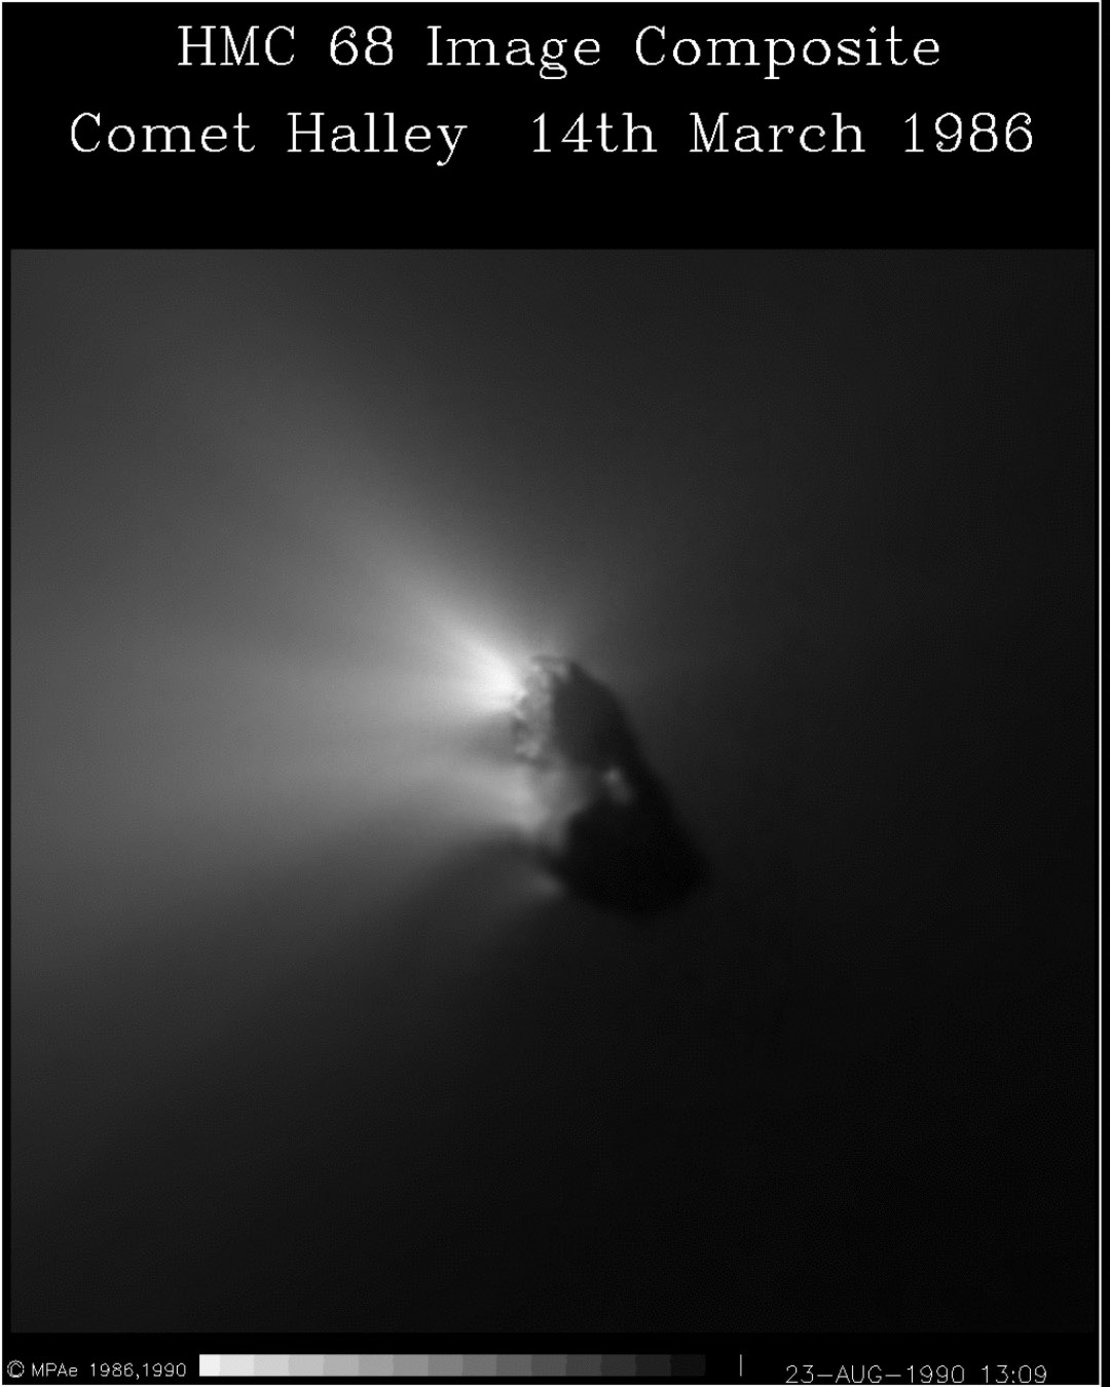 A composite image of the nucleus of comet P/Halley